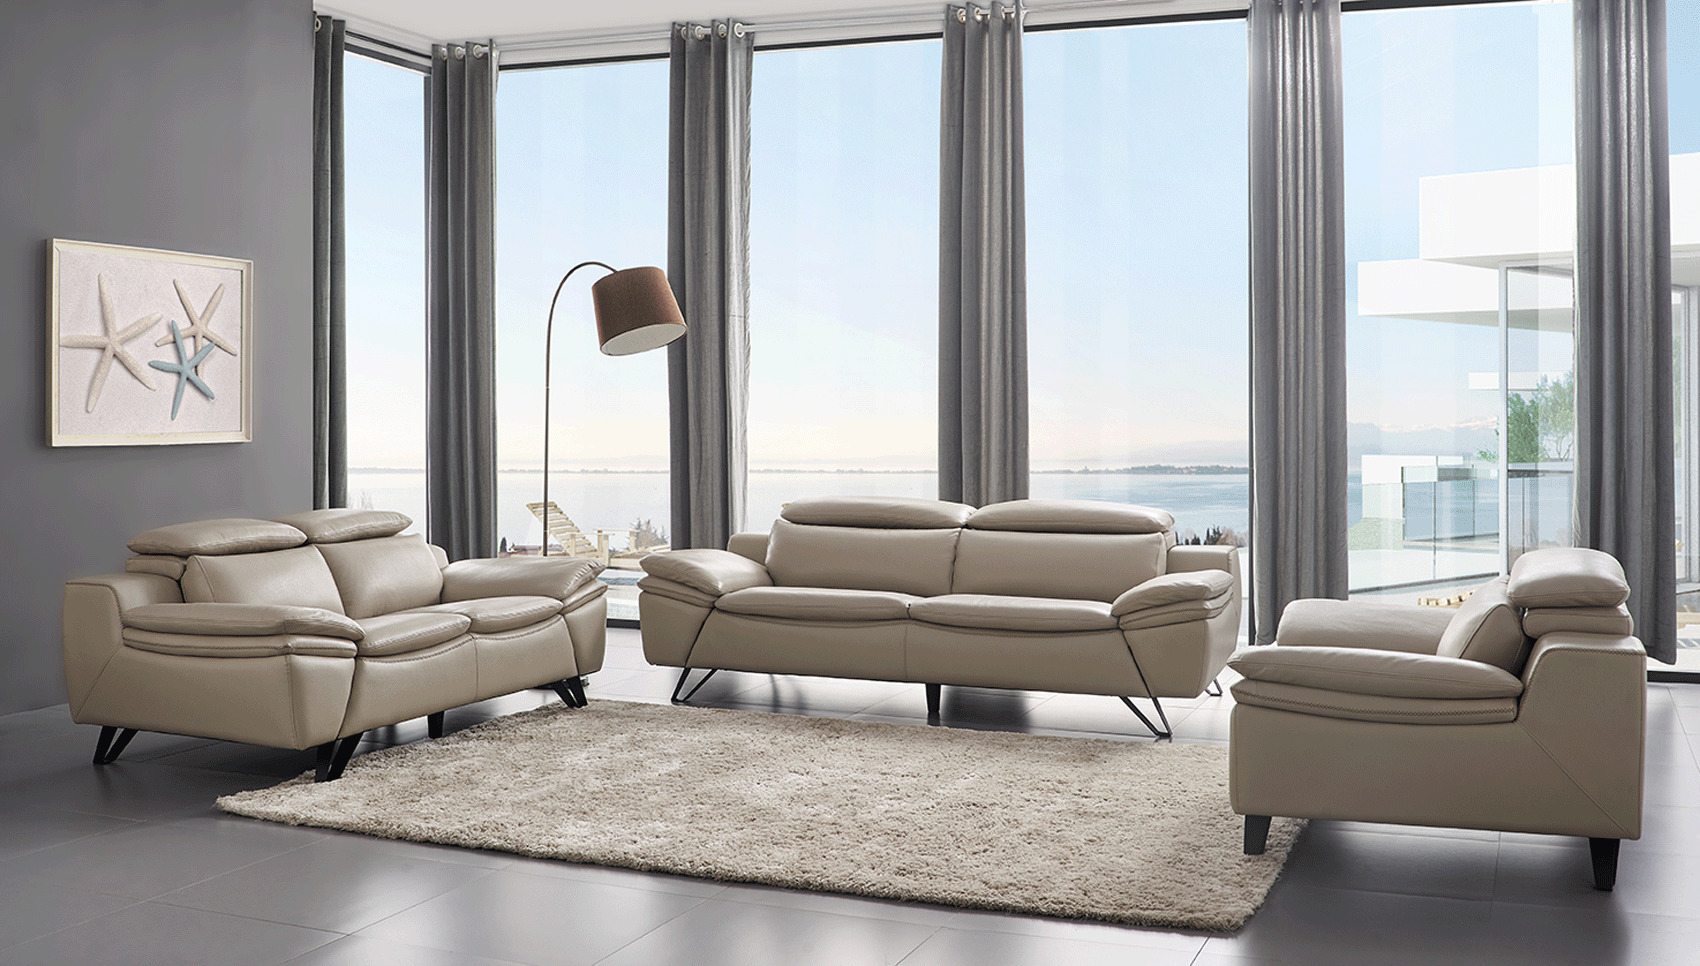 living room chairs modern vintage wishbone chair grey leather contemporary set cleveland ohio